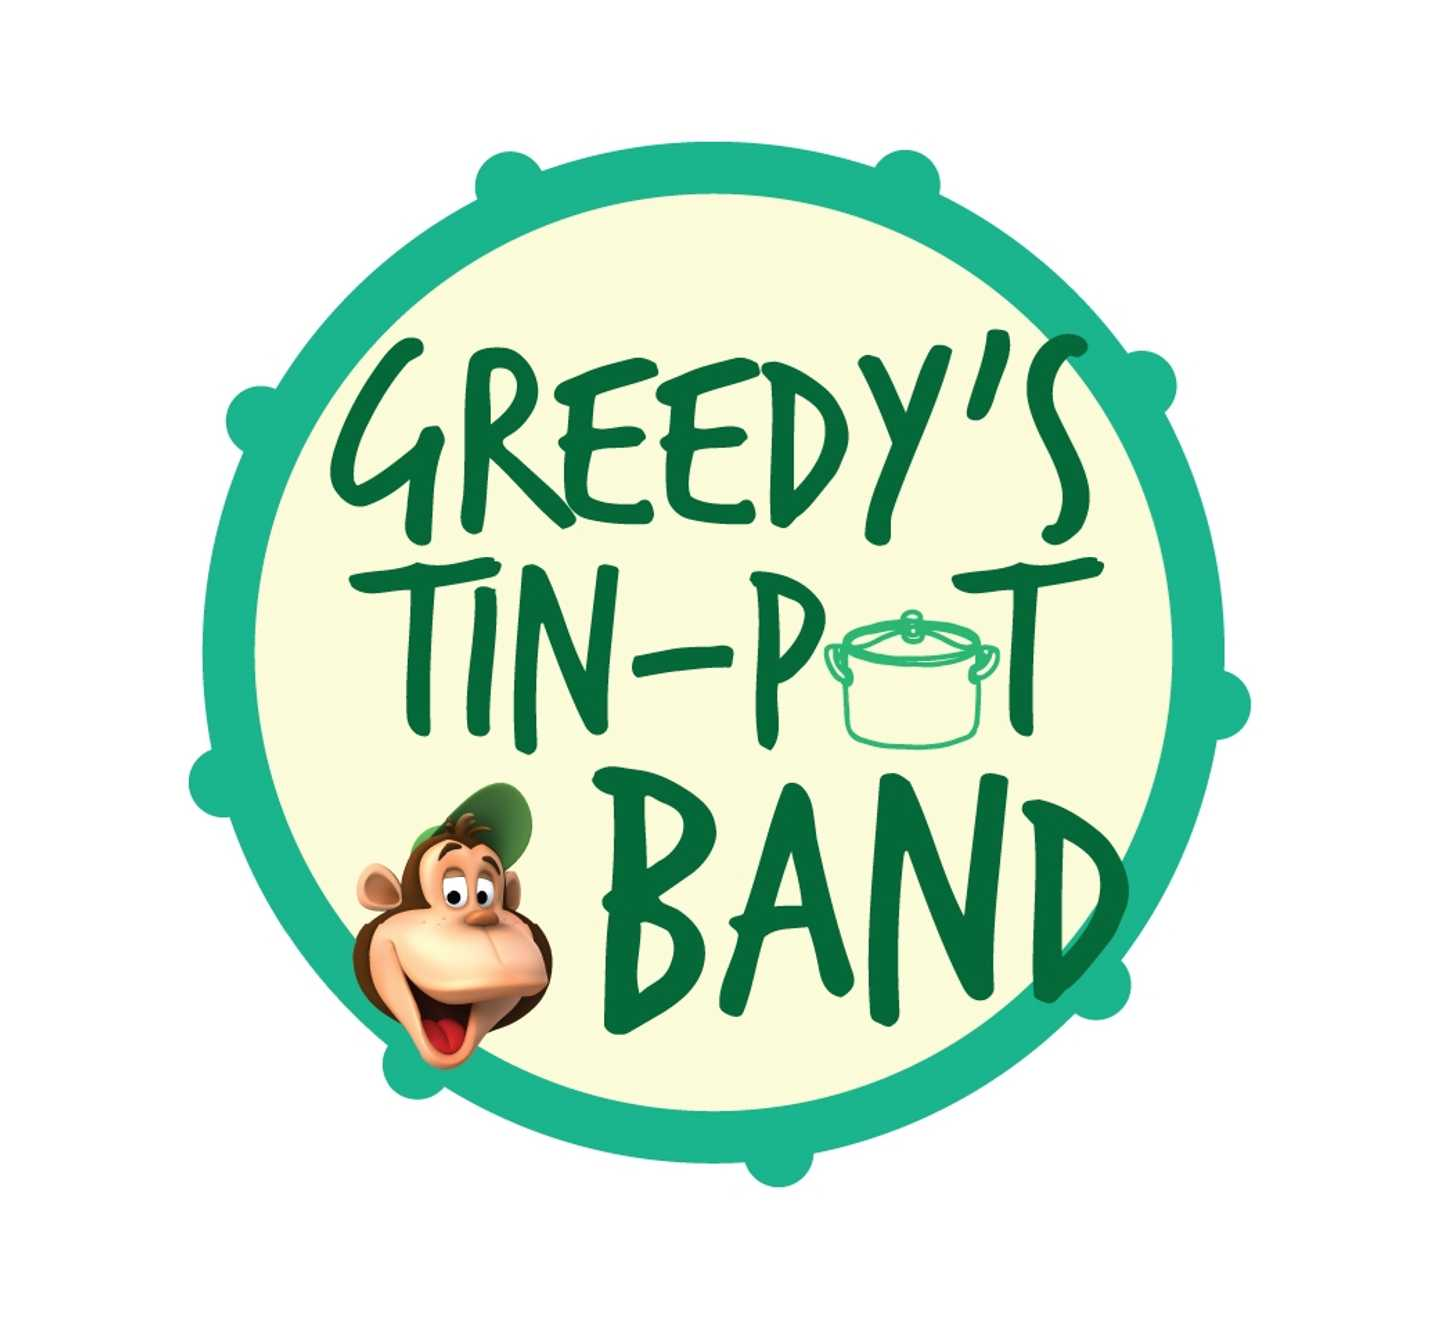 Greedy's Tin-pot Band